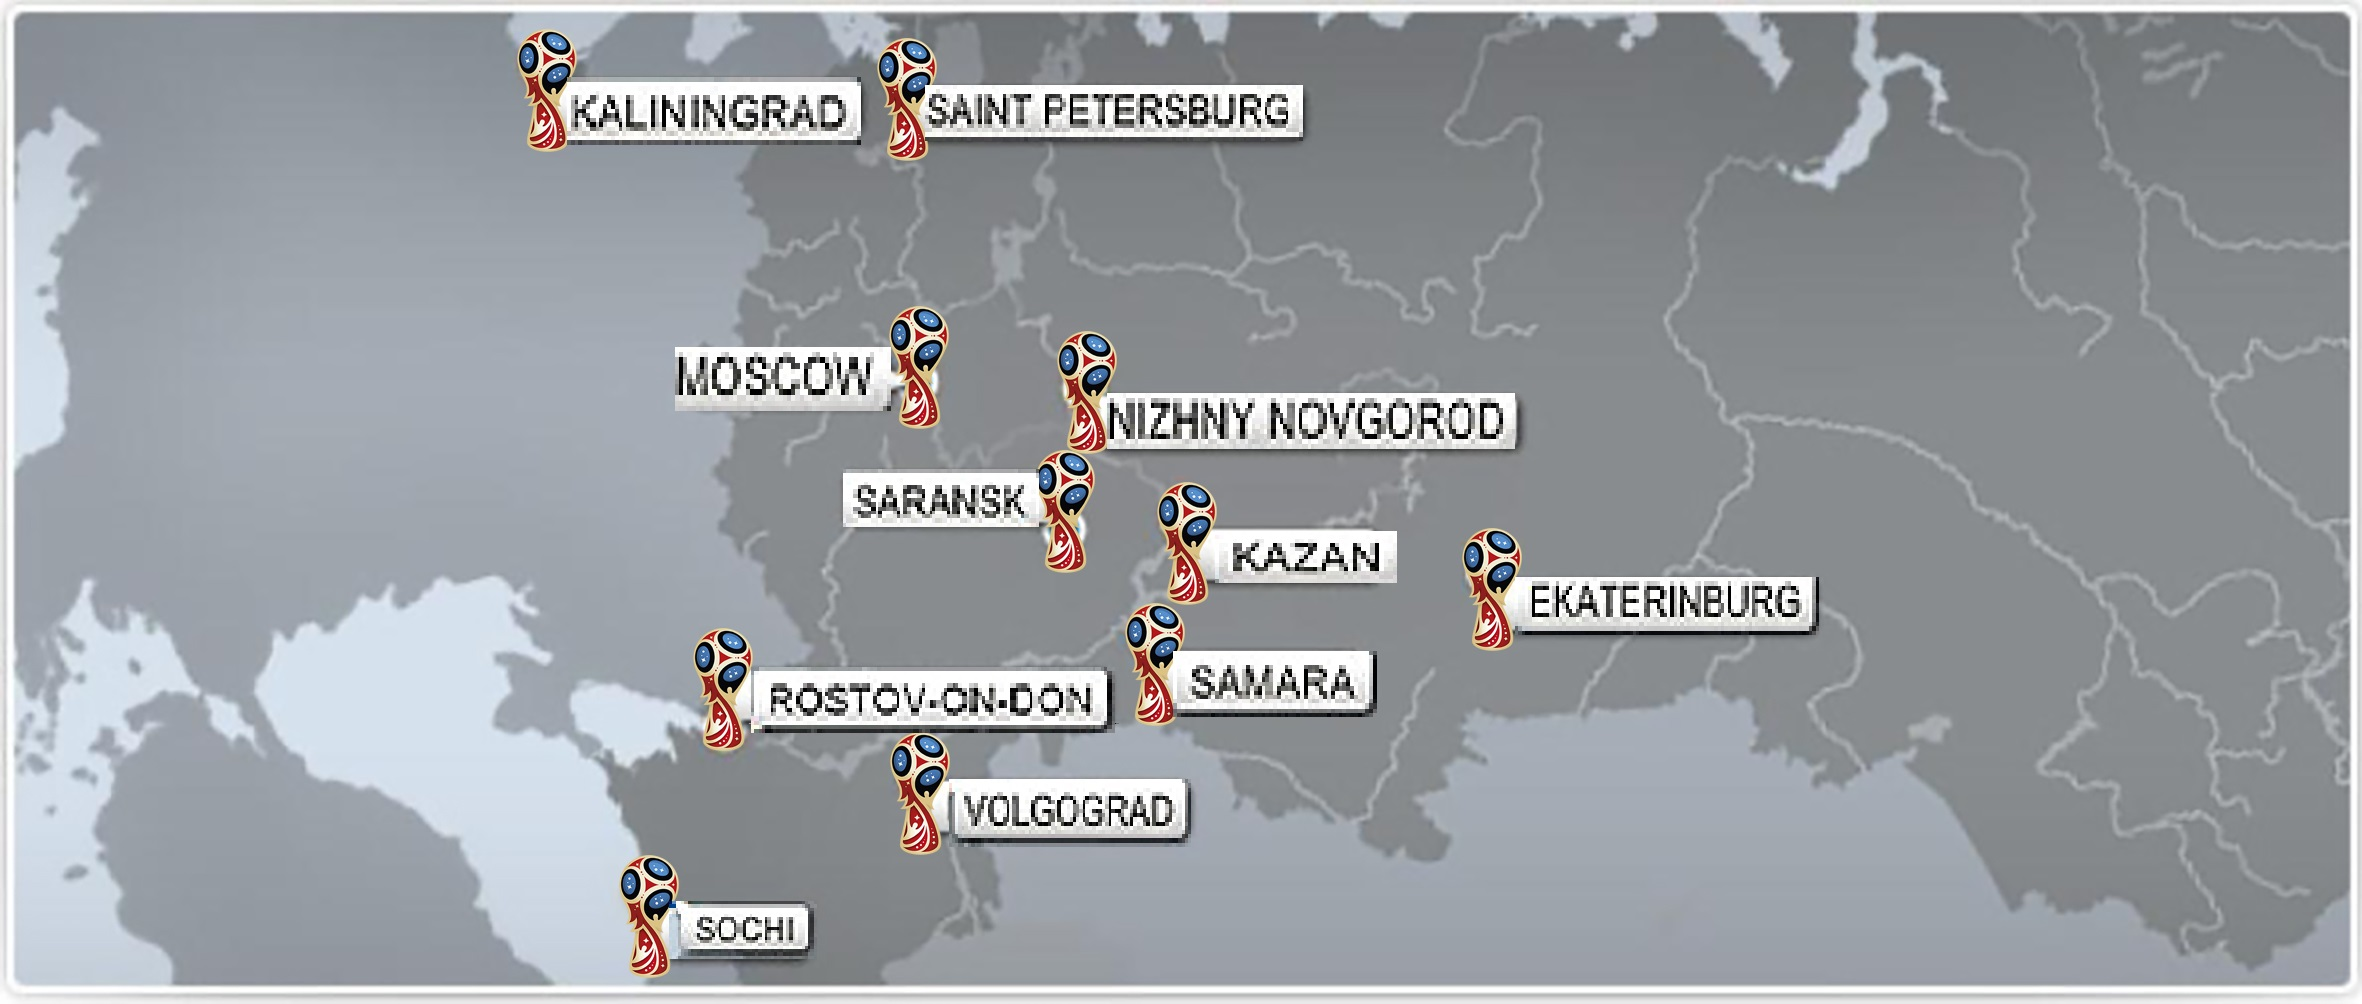 Tours To Russia World Cup 2018 Rossi Tour